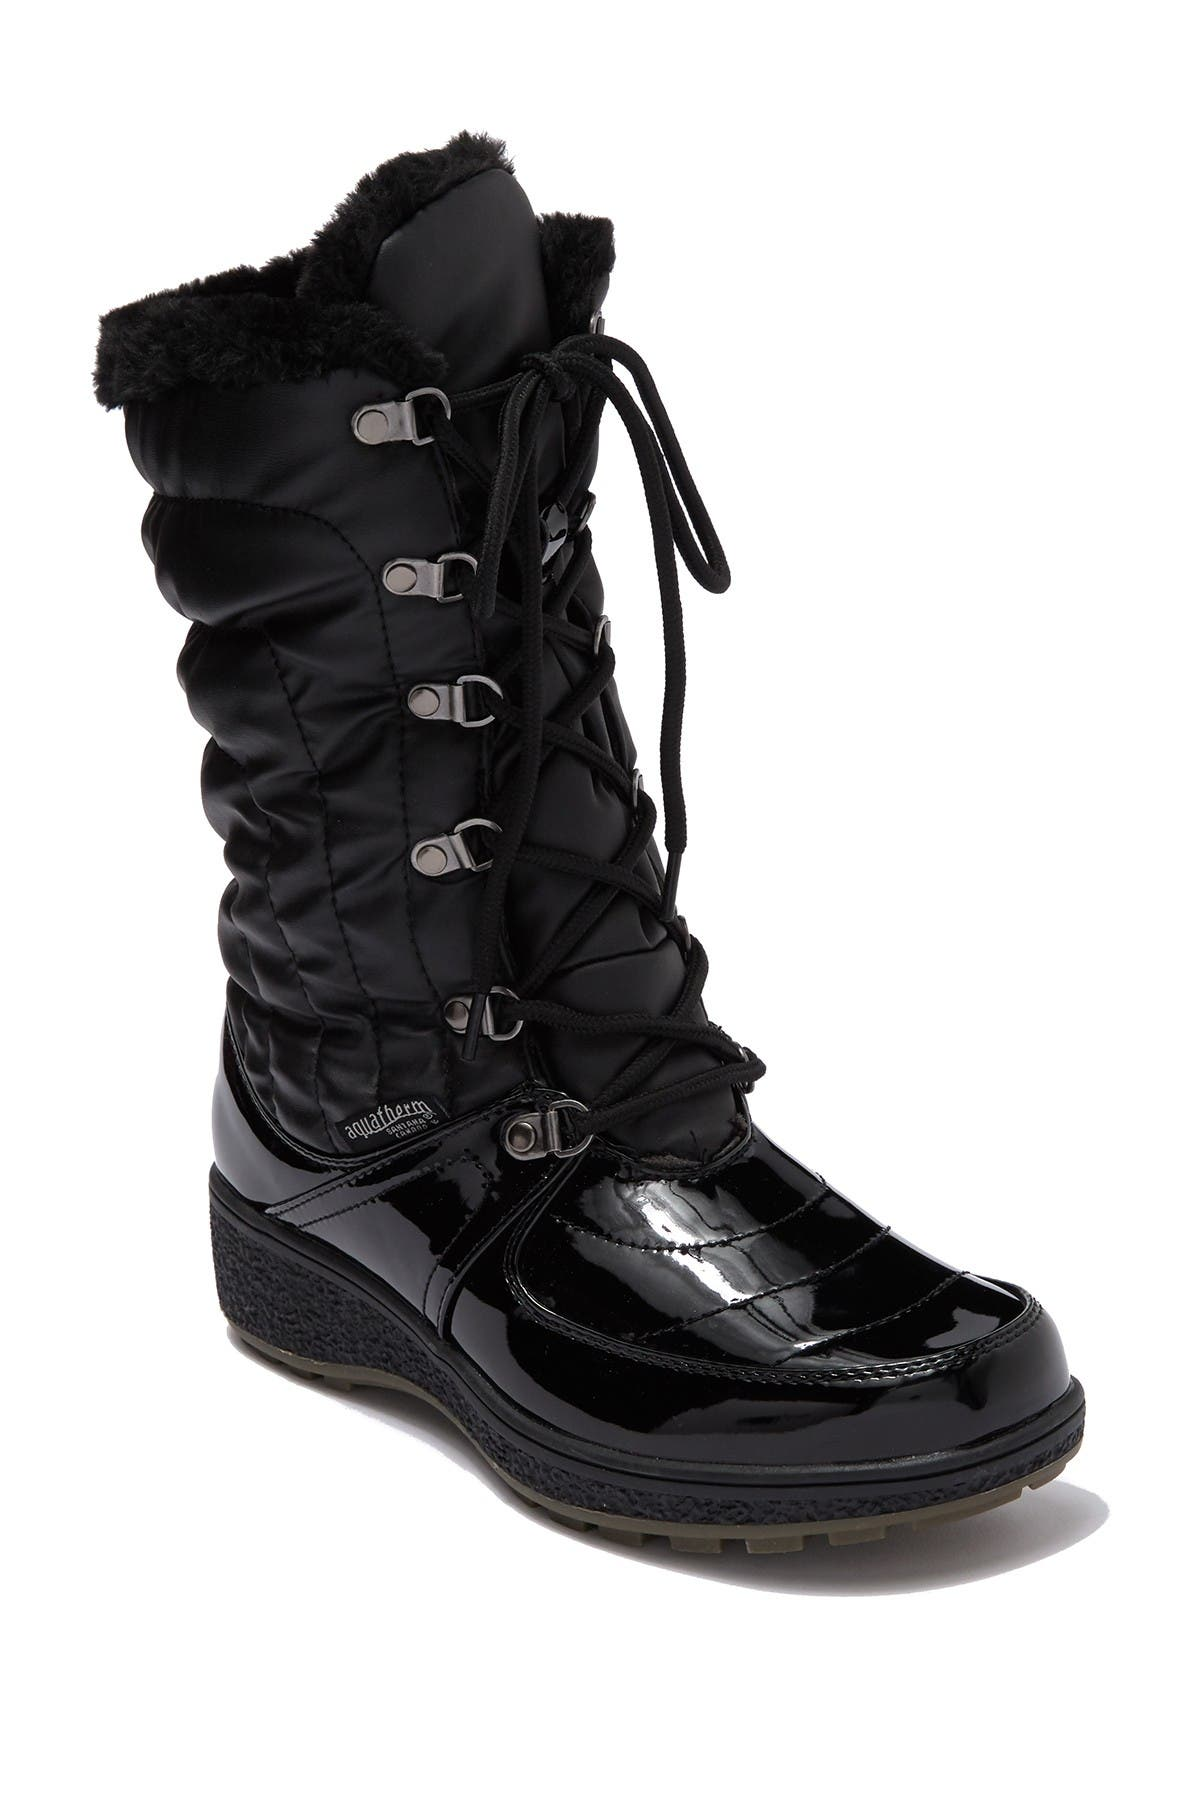 Image of Aquatherm by Santana Canada Courtmid Quilted Faux Fur Lined Lace Up Winter Boot